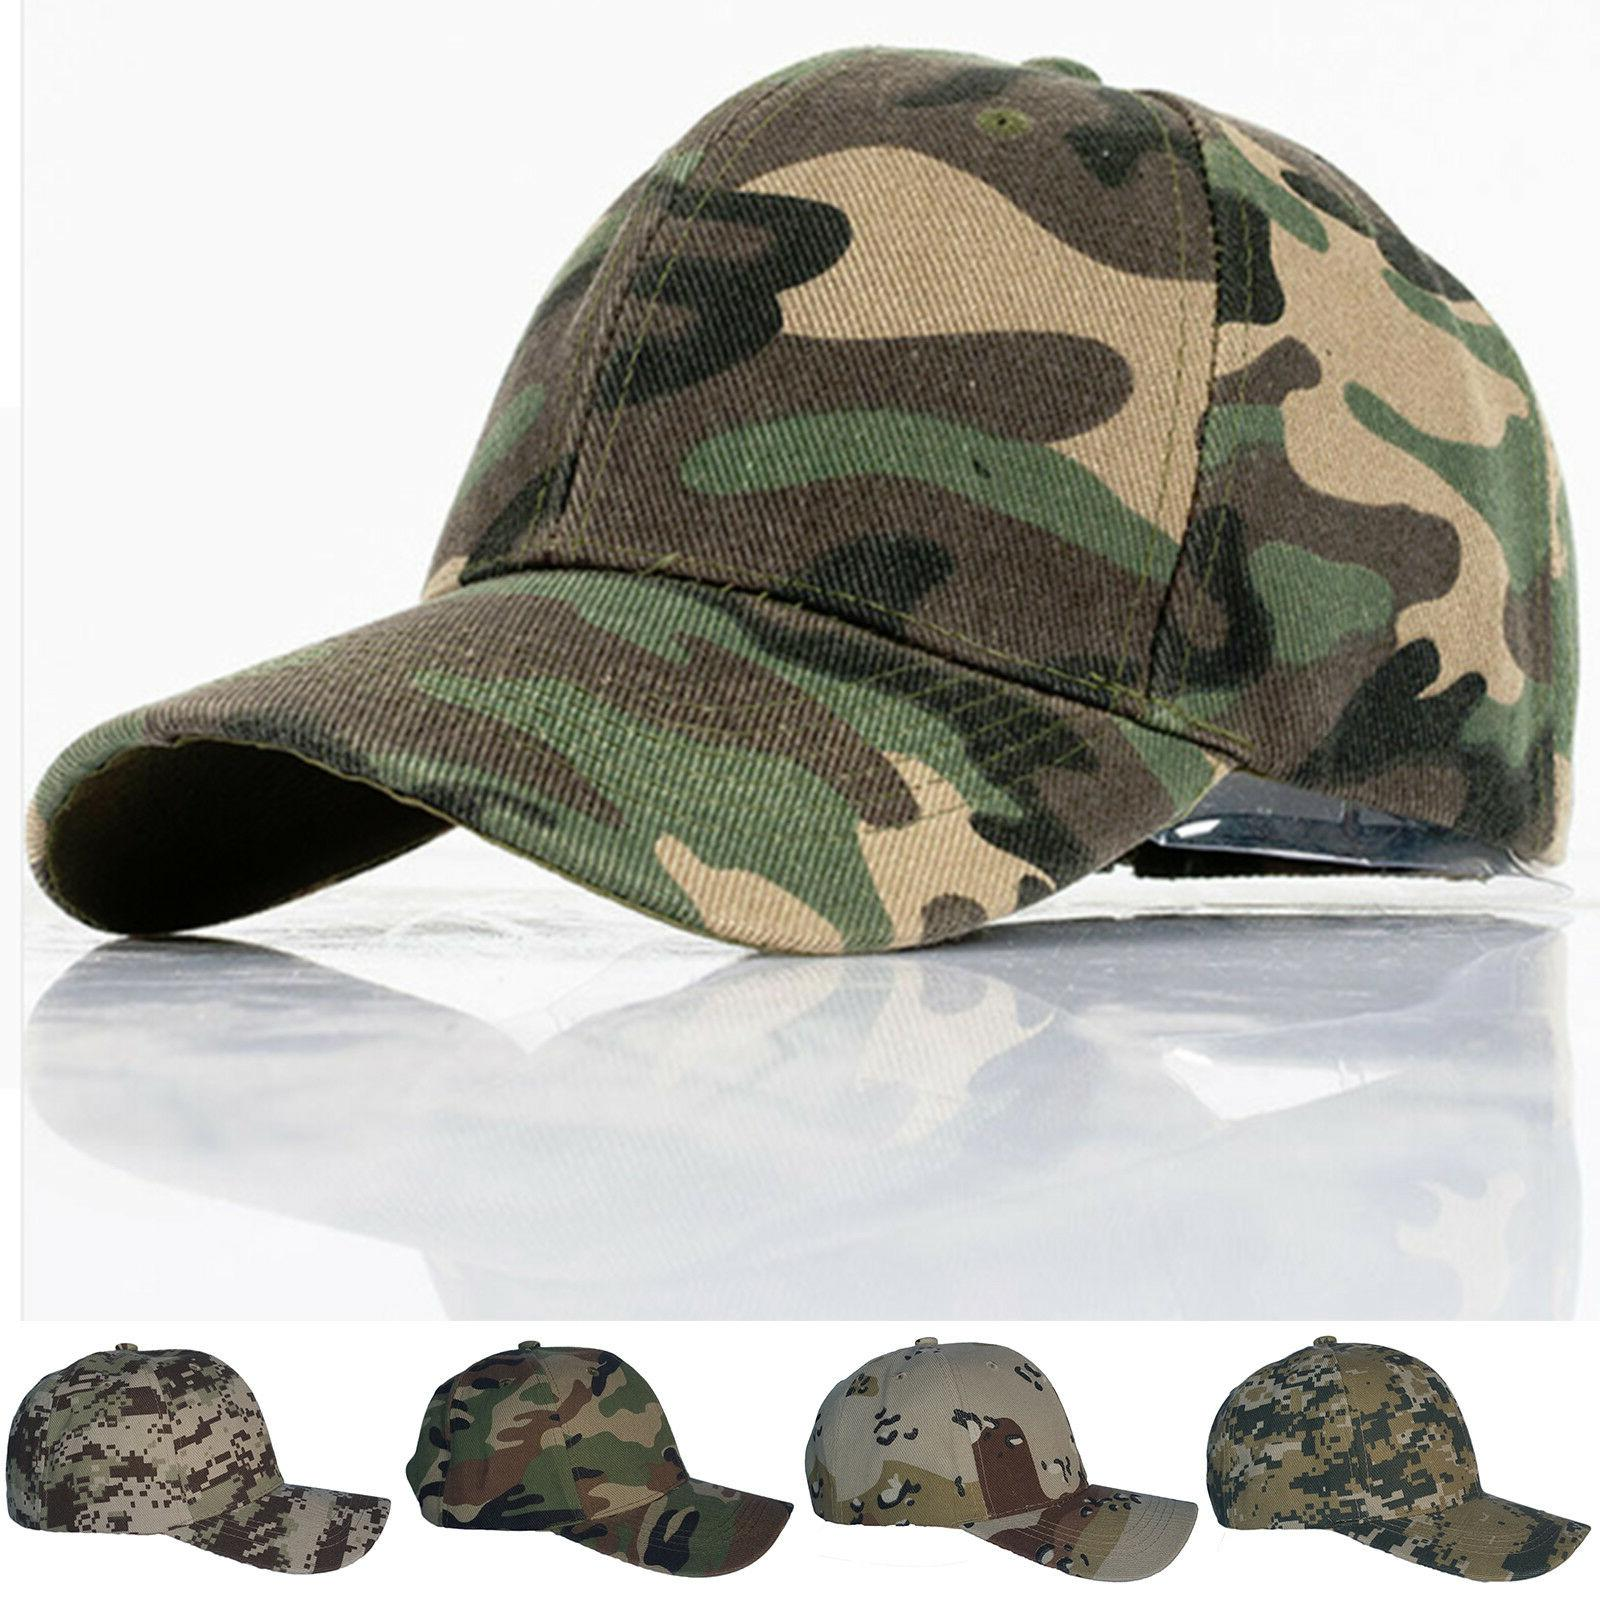 Baseball Cap Mens Tactical Army Hat Military Hunting Fishing